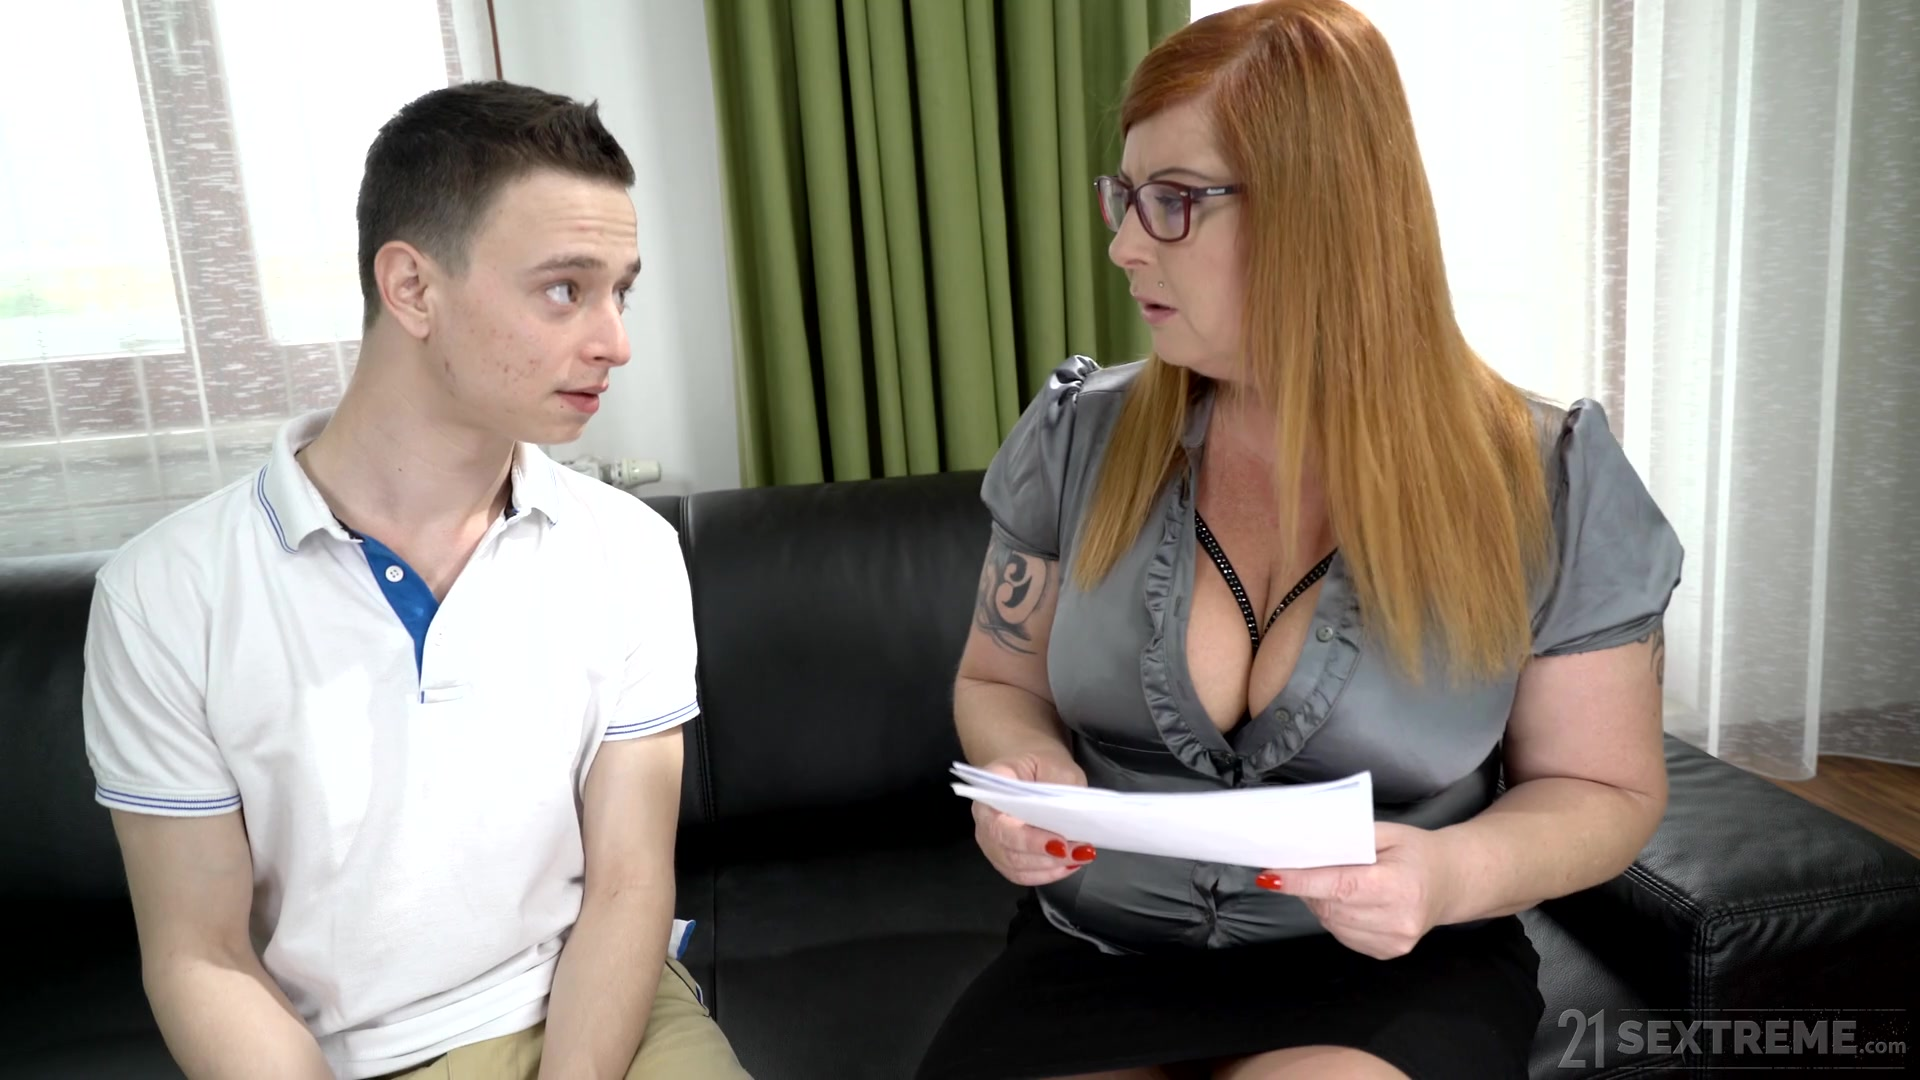 21 Sextreme Porno Net chubby woman spreads legs for a young boy to fuck her - hell